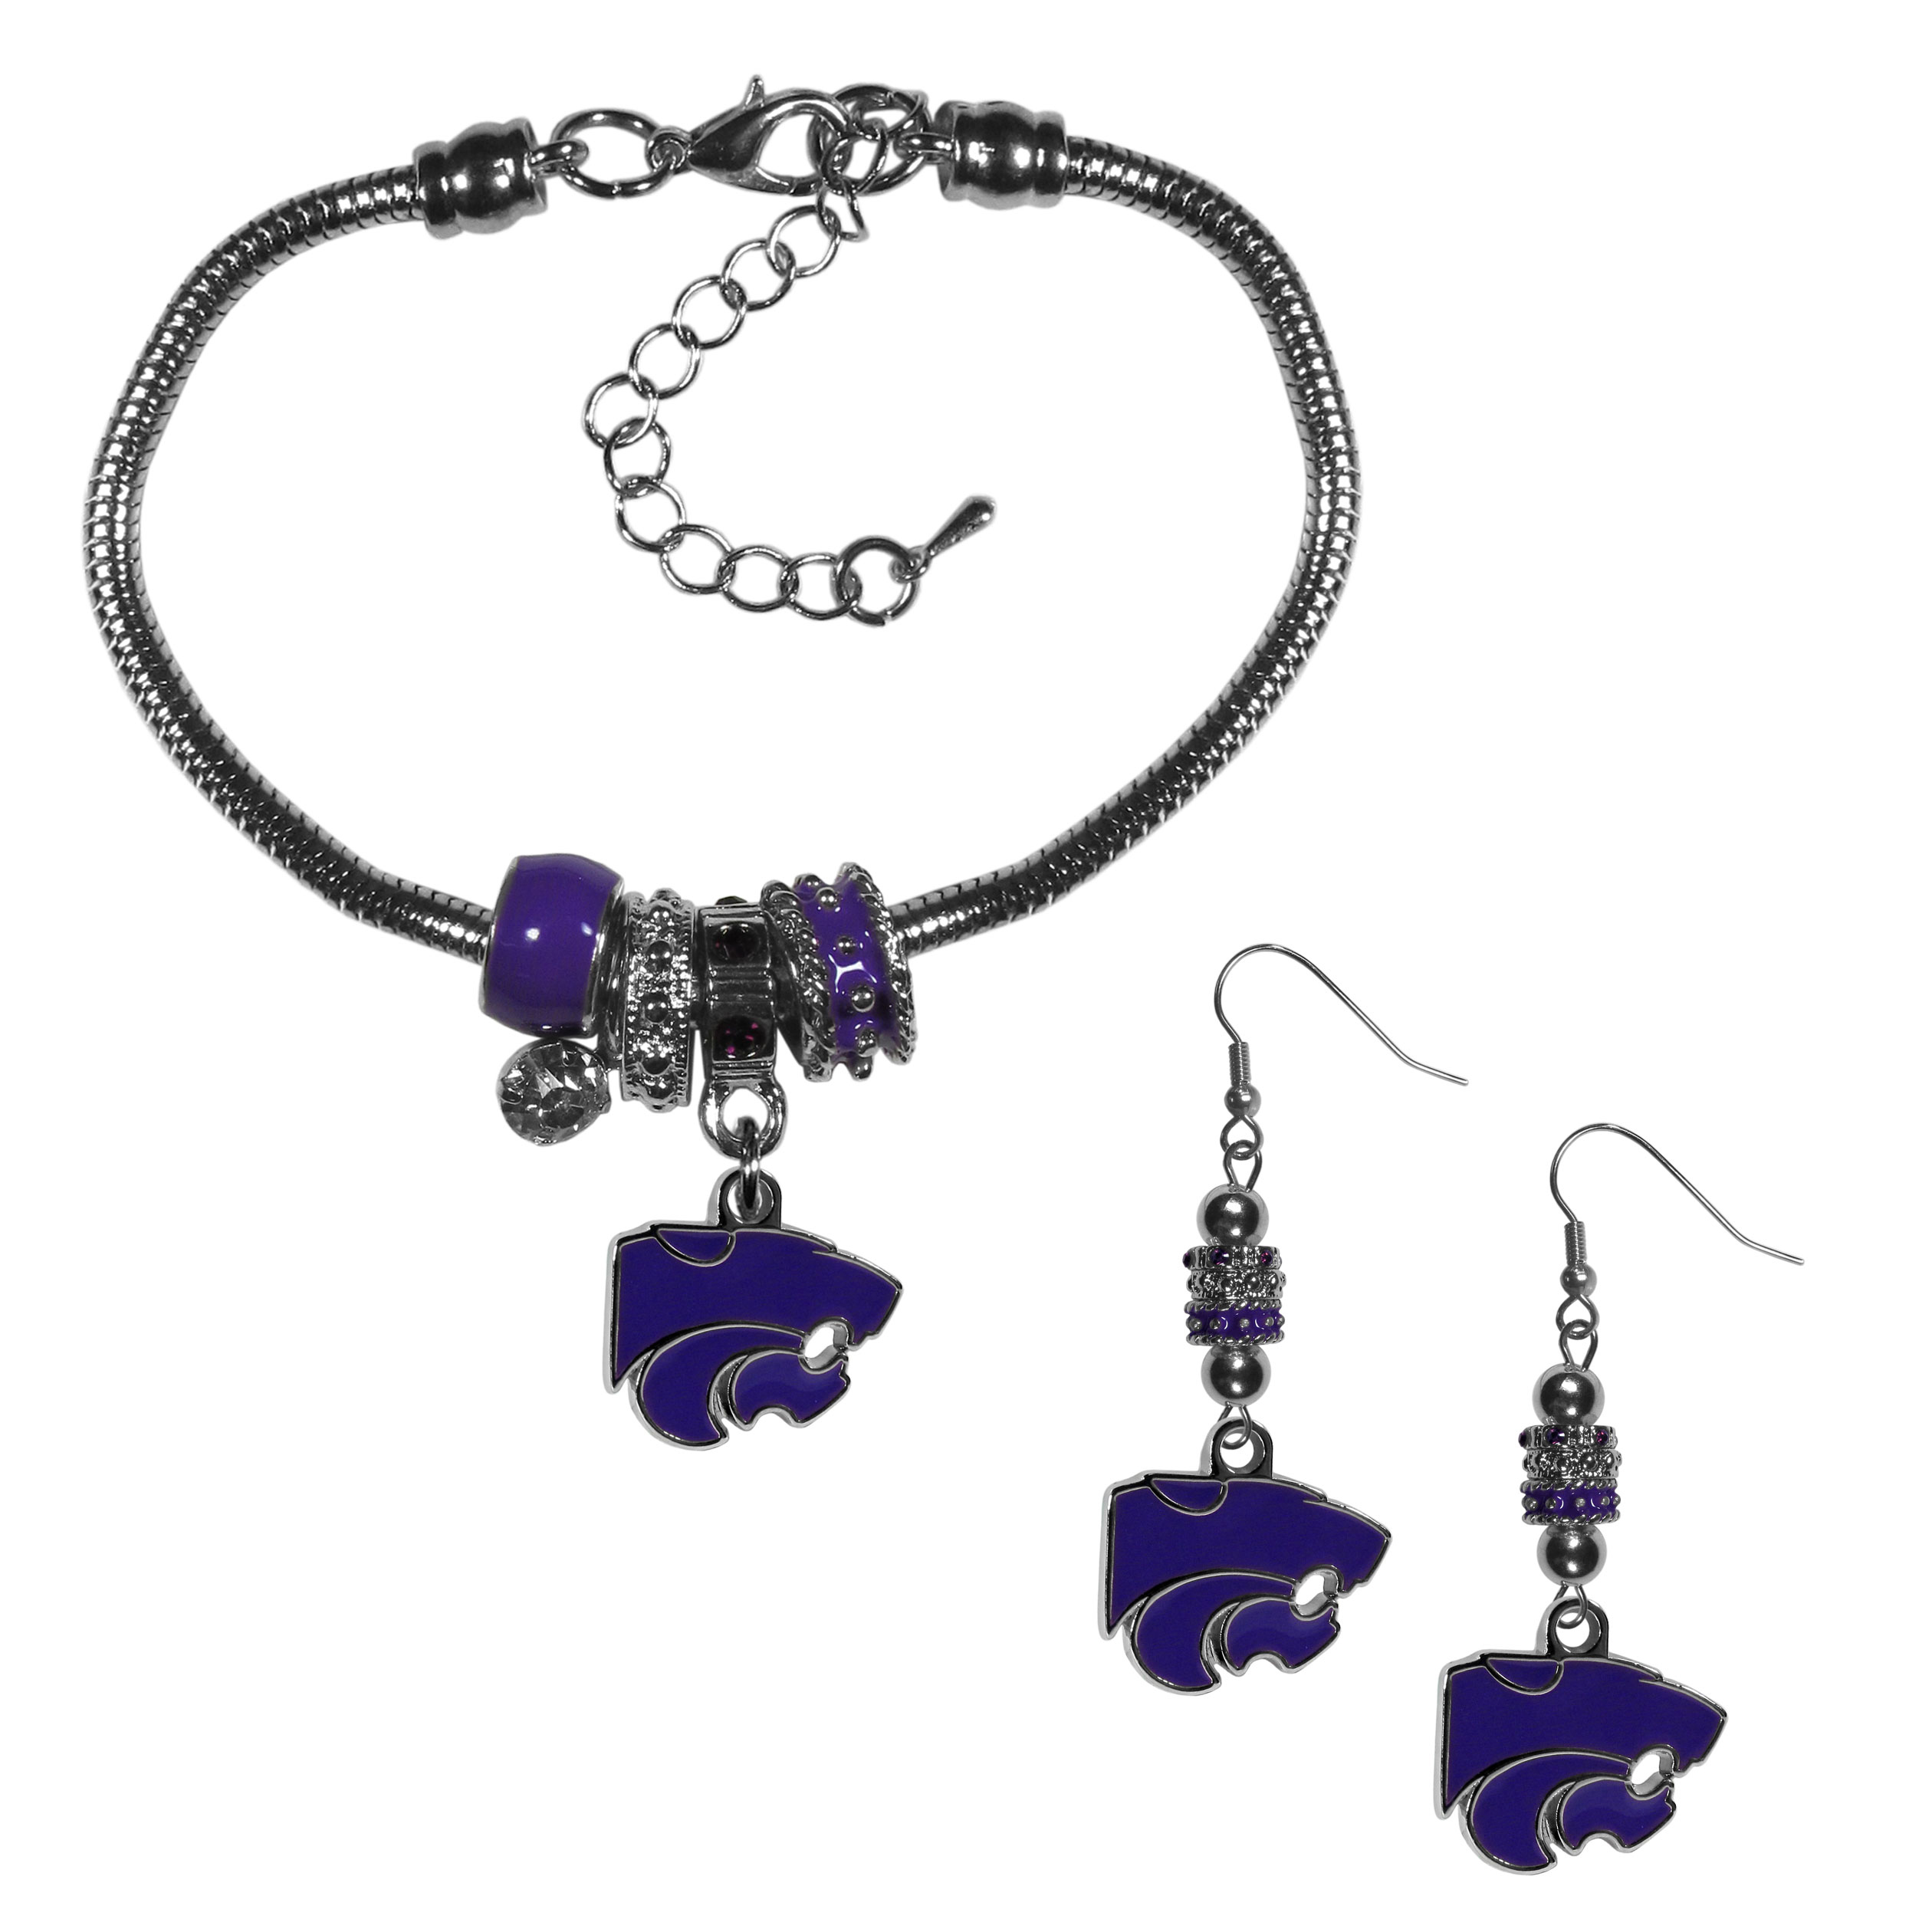 Kansas St. Wildcats Euro Bead Earrings and Bracelet Set - We combine the popular Euro bead style with your love of the Kansas St. Wildcats with this beautiful jewelry set that includes earrings and a matching bracelet. The stylish earrings feature hypoallergenic, nickel free fishhook posts and 3 team colored Euro beads and a metal team charm. The matching snake chain bracelet is 7.5 inches long with a 2 inch extender and 4 Euro beads with a rhinestone charm and team charm.